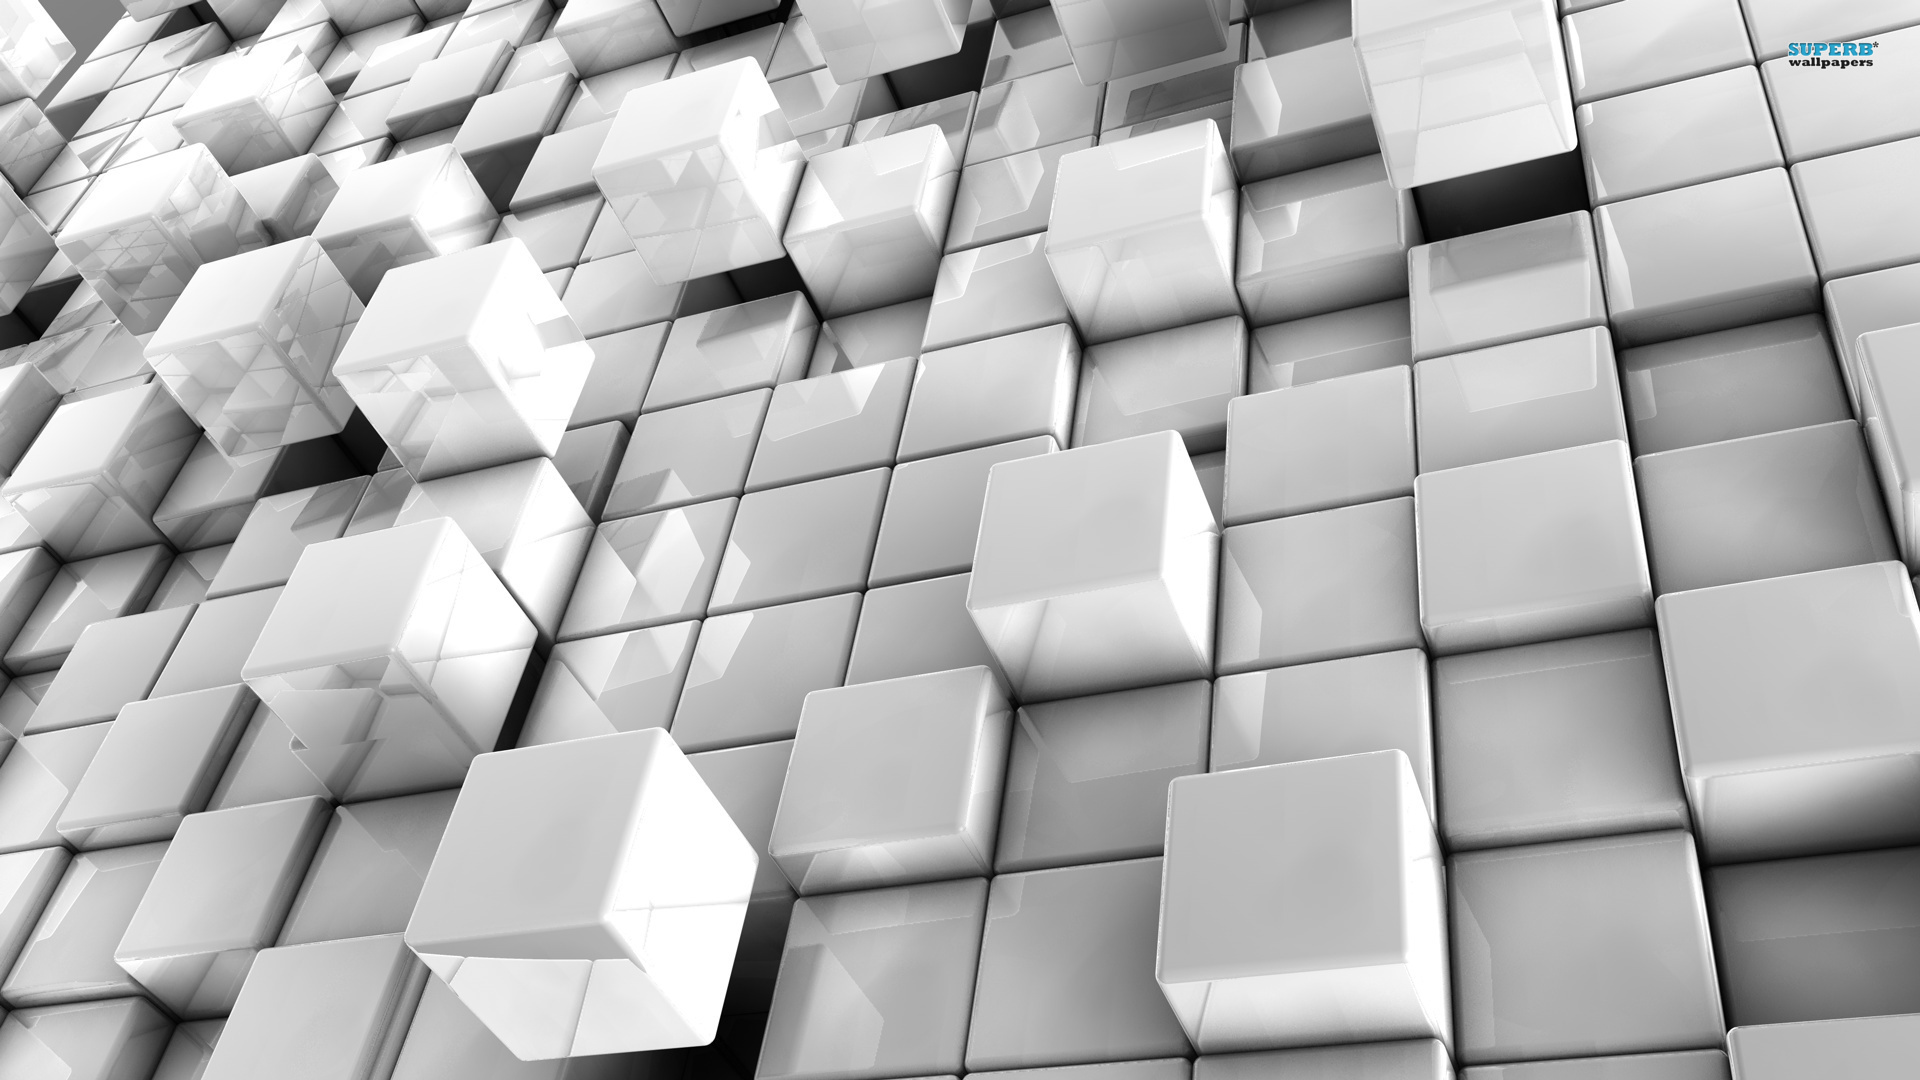 Abstract In White Cubes 402972 Wallpaper wallpaper